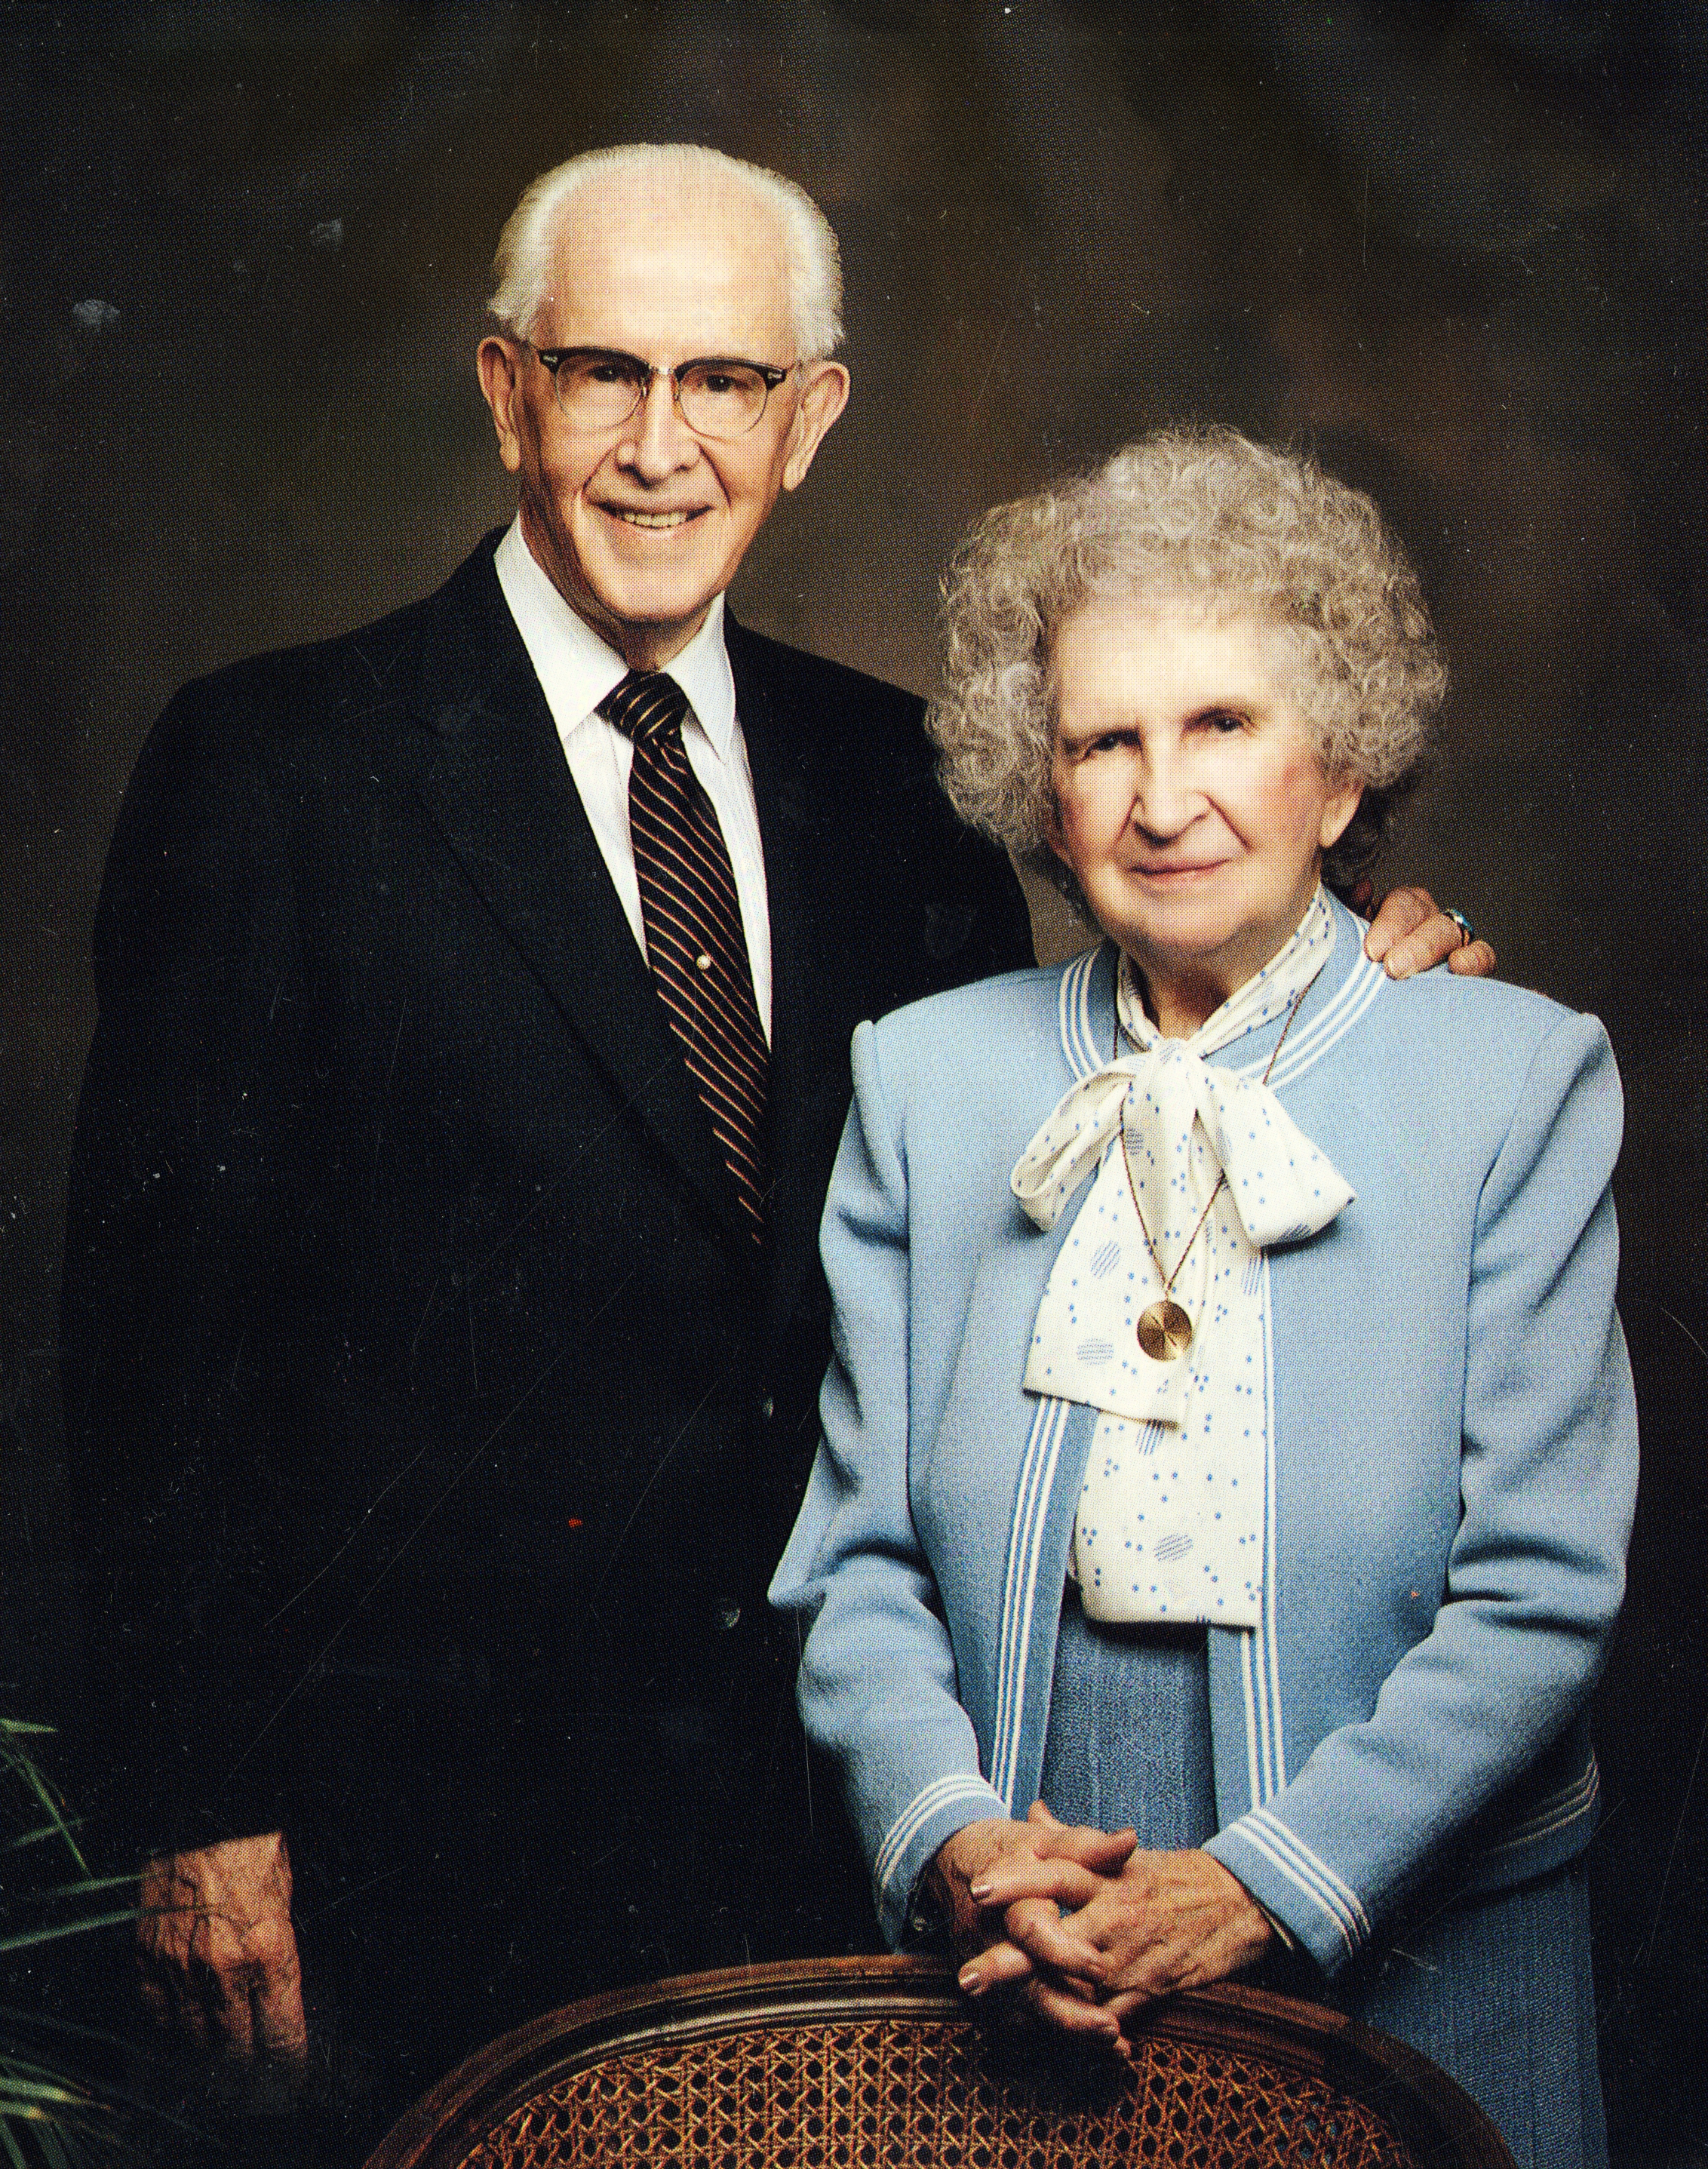 President Ezra Taft Benson and his wife, Sister Flora Smith Amussen Benson, posed for a photo on the 60th anniversary of their wedding. They were married on Sept. 10, 1926, in the Salt Lake Temple. She died Aug. 14, 1992; he died May 30, 1994.